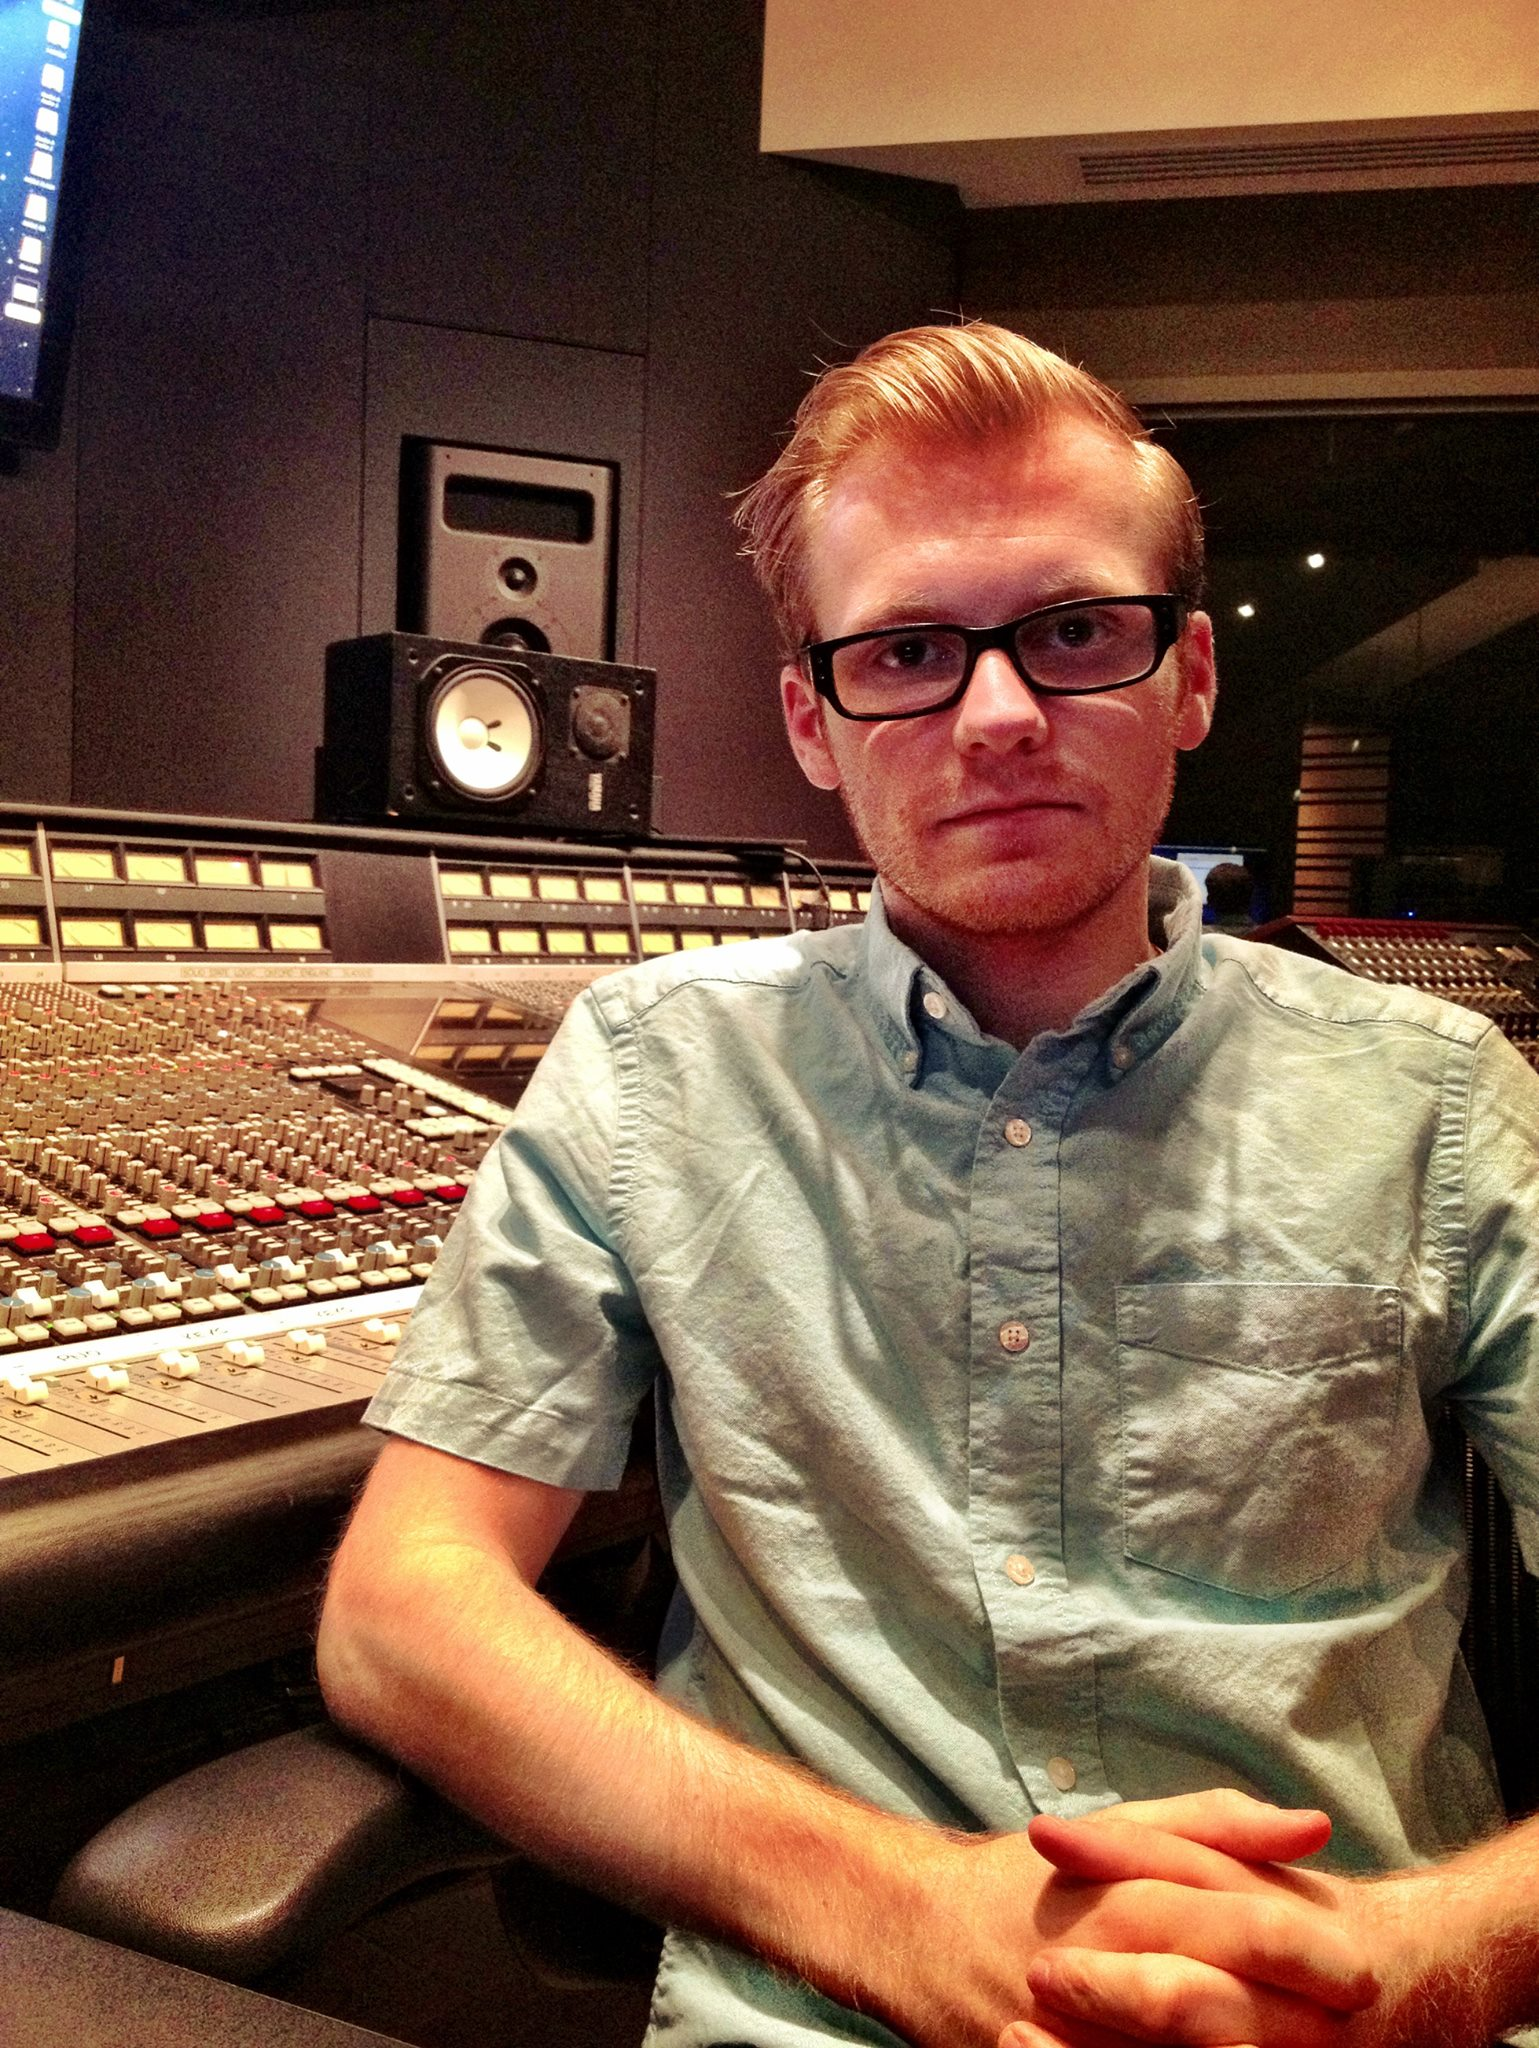 Alastair Sims - Music Producer / Engineer / Supervisor